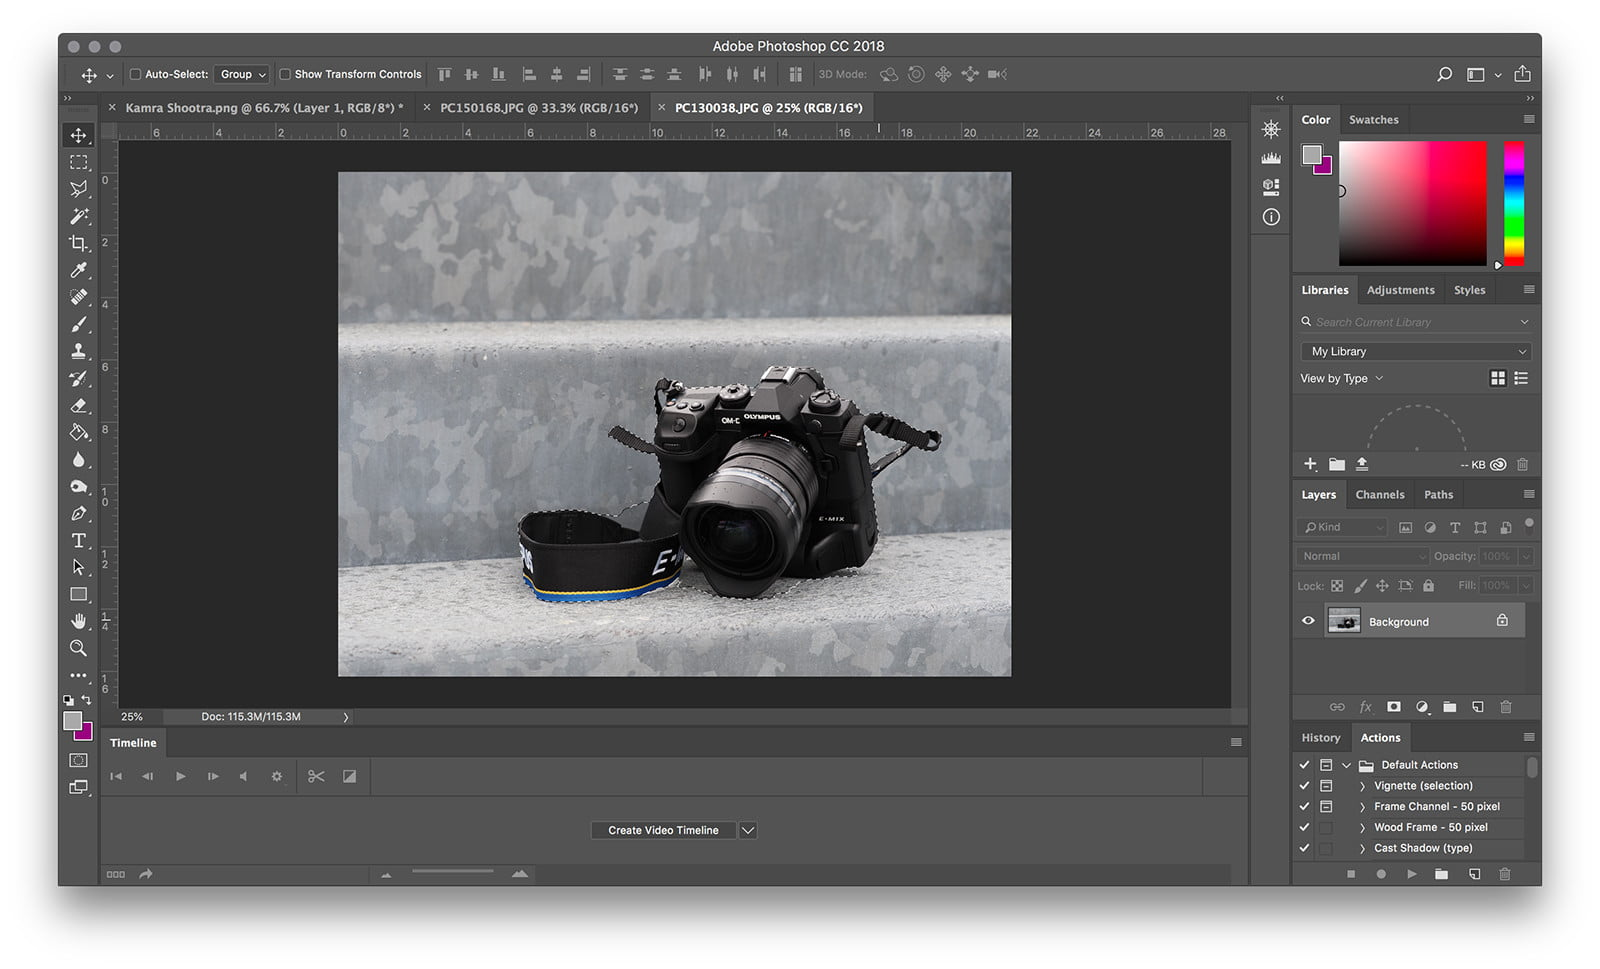 How to Make a Background Transparent in Photoshop.